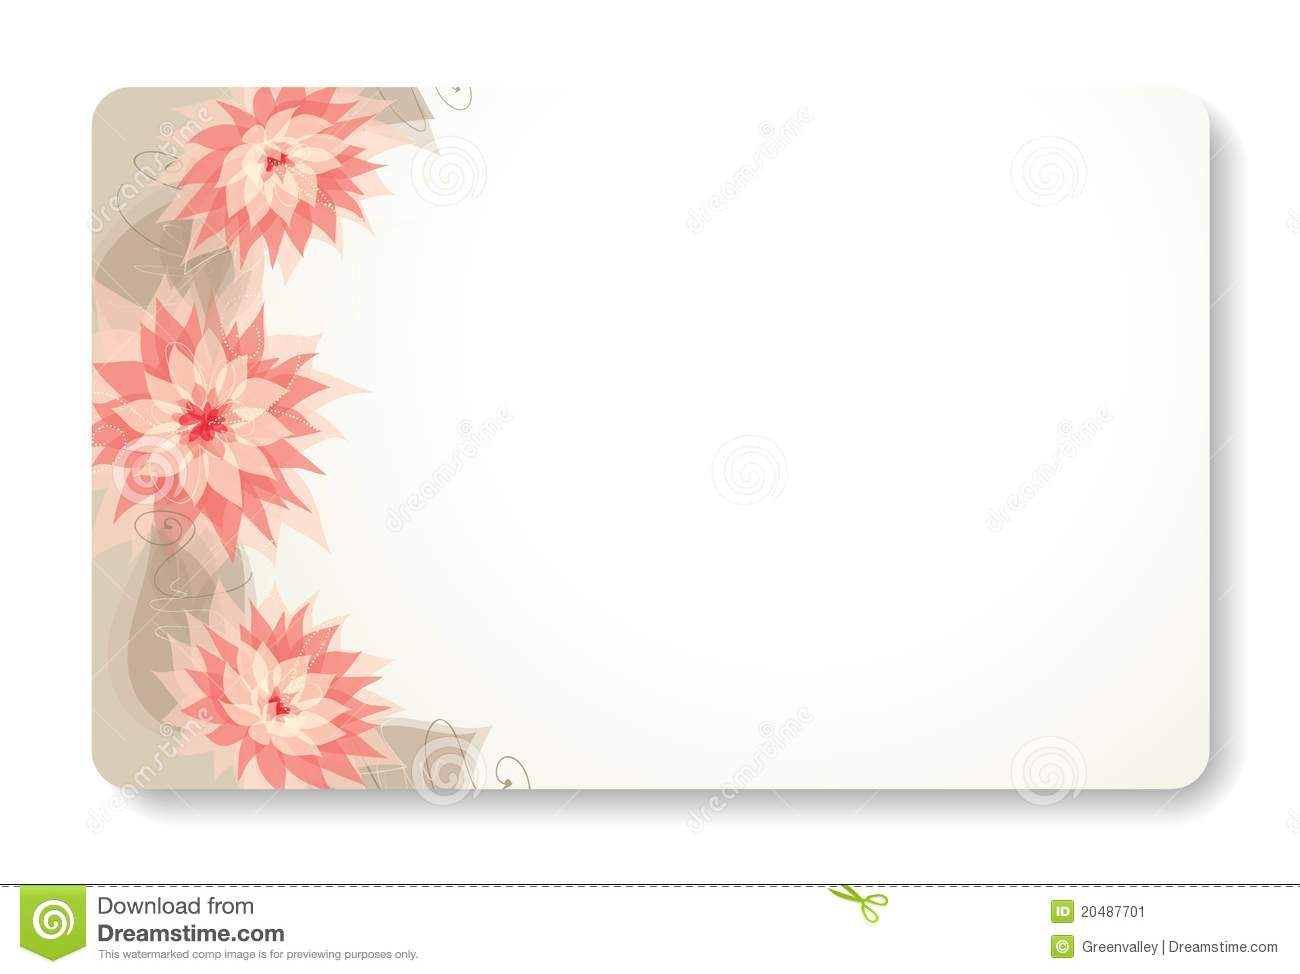 Visiting cards backgrounds internet explorer icon psd for Background for business cards